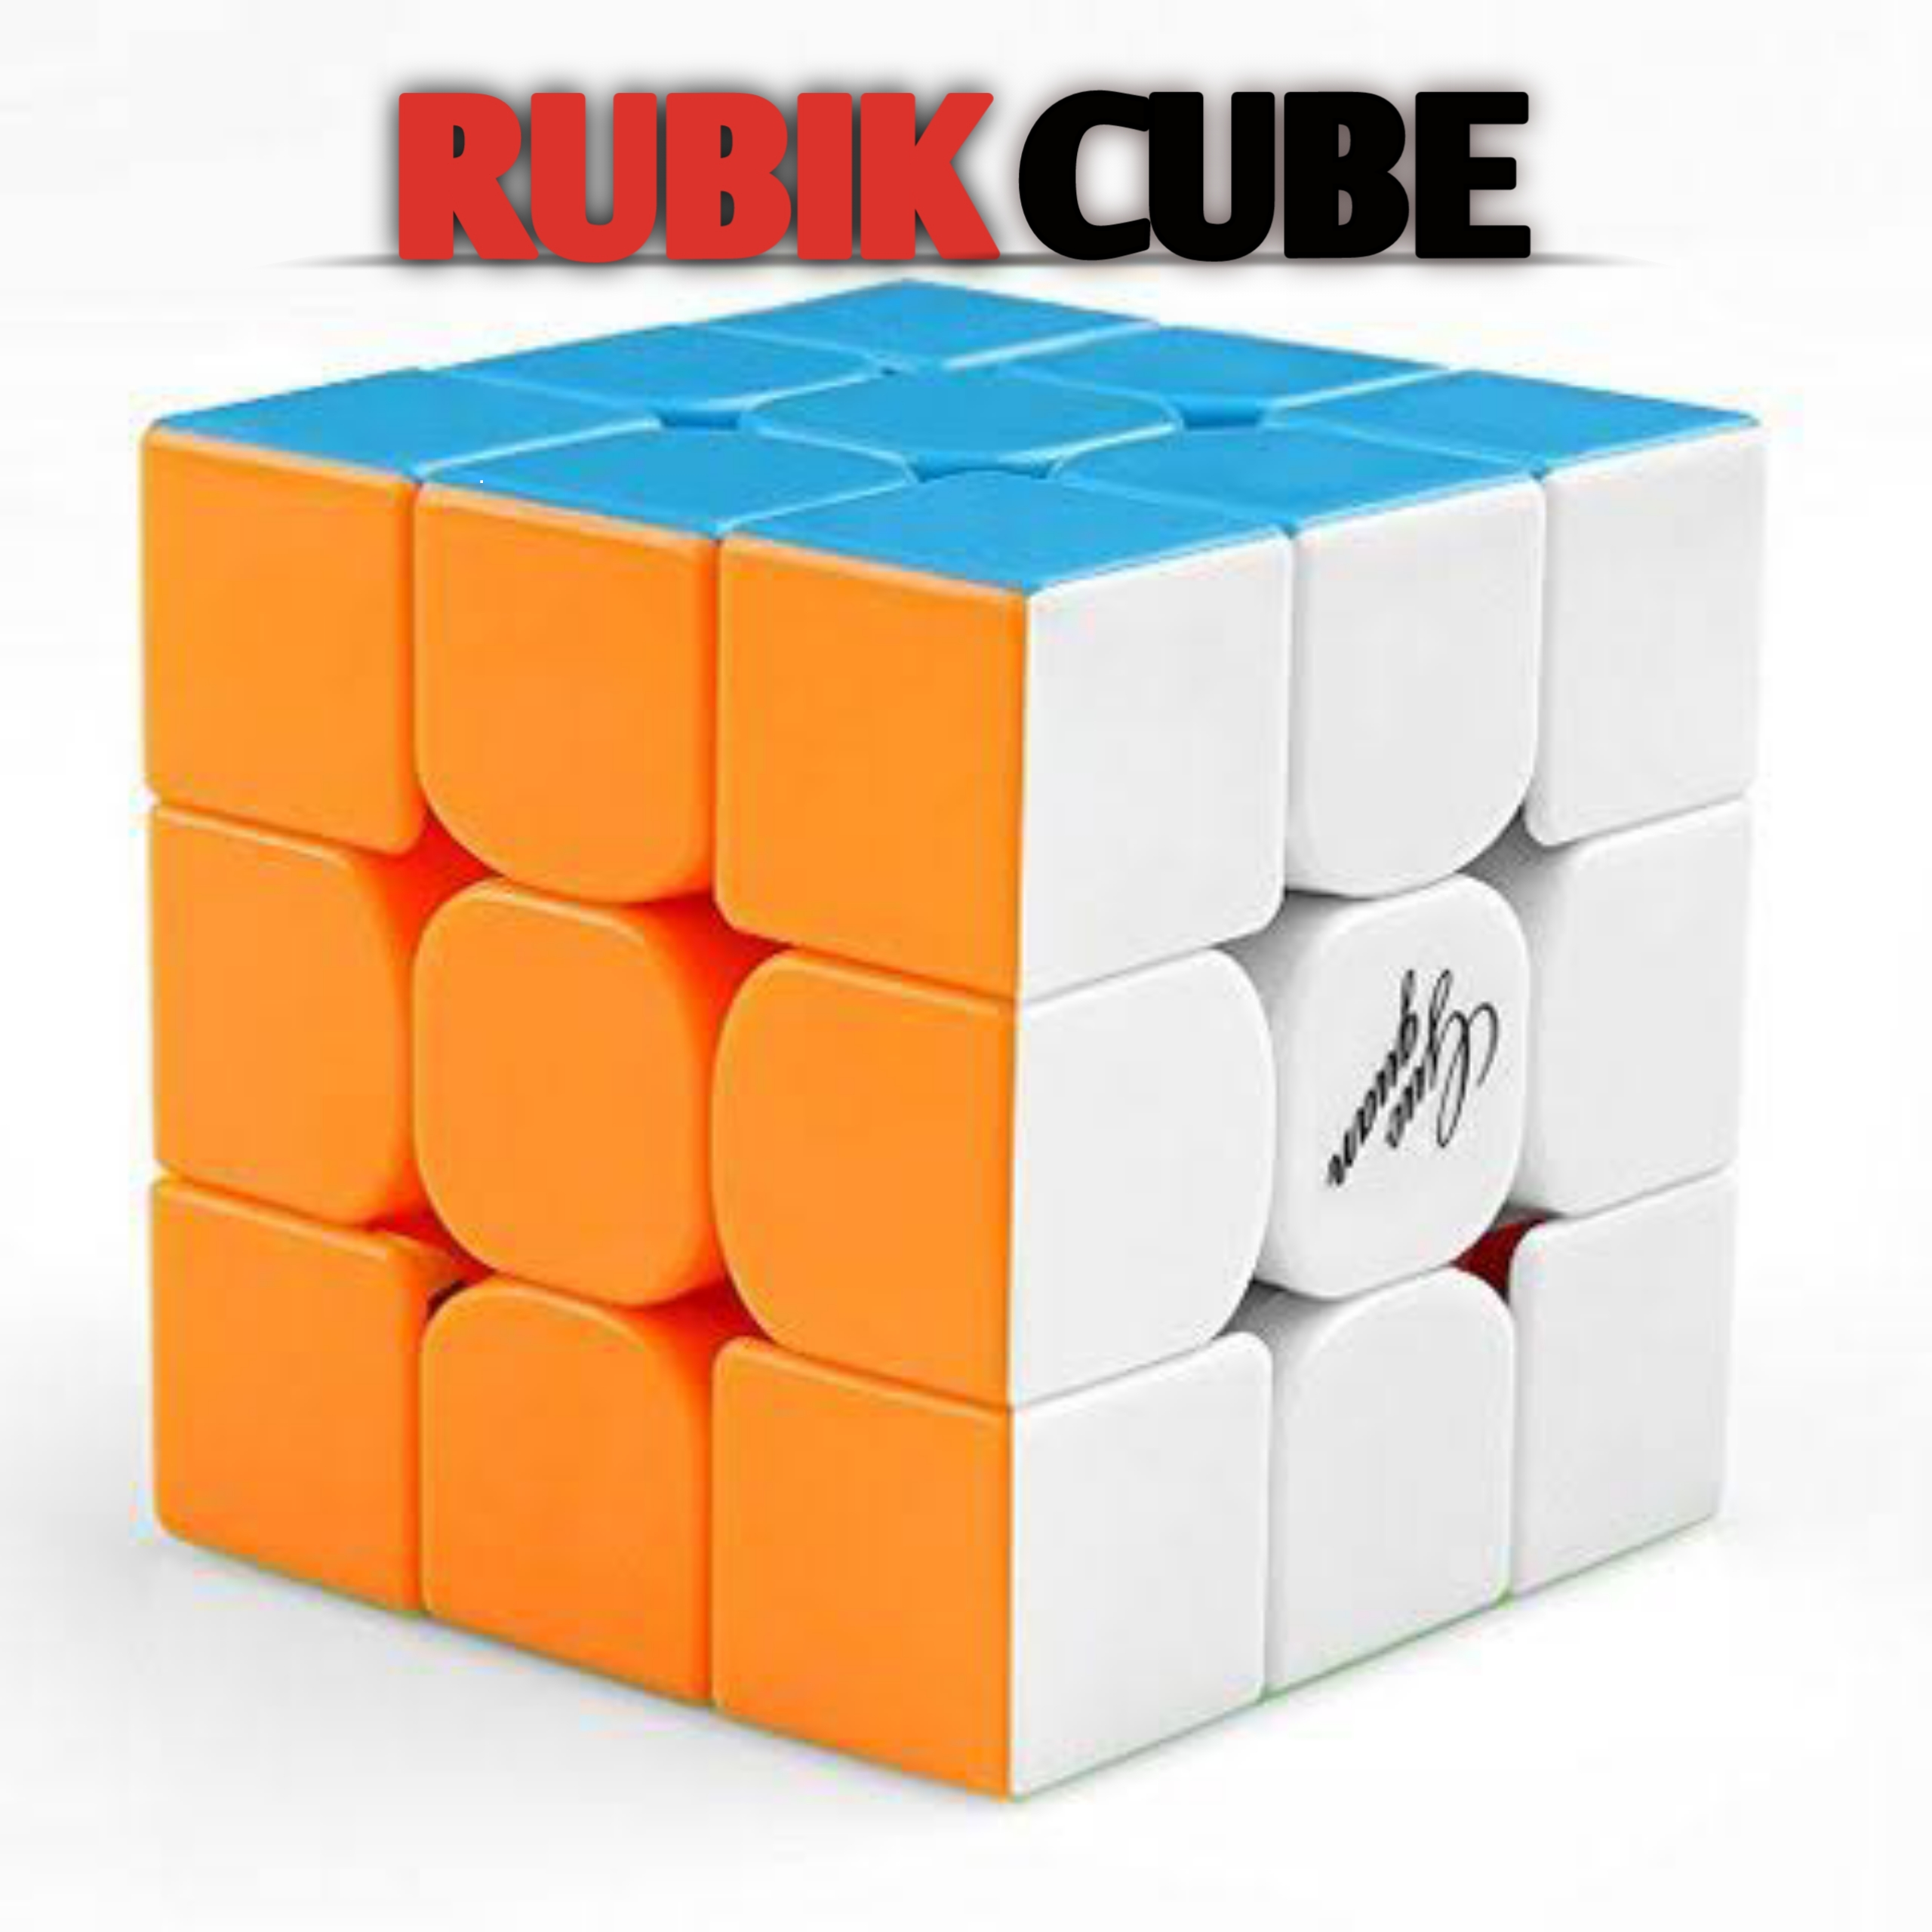 Rubik Cube 3x3 - Qiyi Warrior S Best Quality Fast Speed Magic Cube Puzzle Game Toys